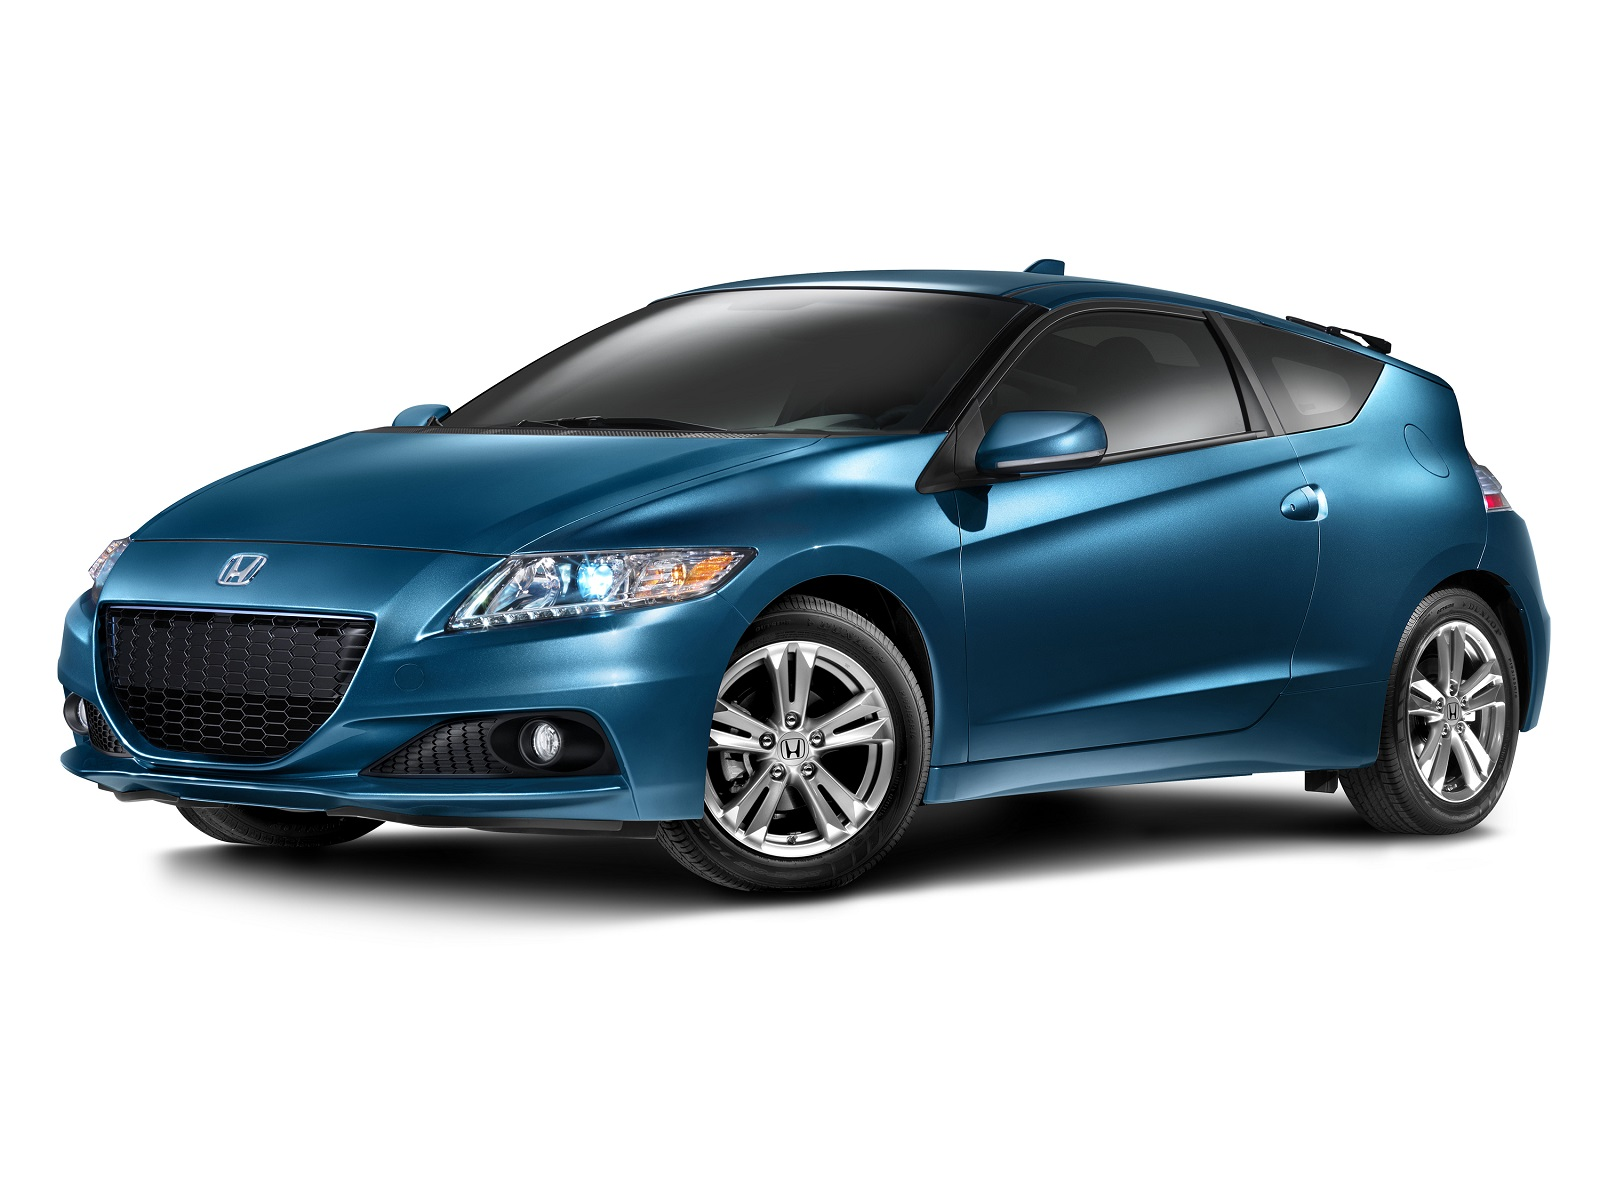 2014 honda cr z review ratings specs prices and photos. Black Bedroom Furniture Sets. Home Design Ideas